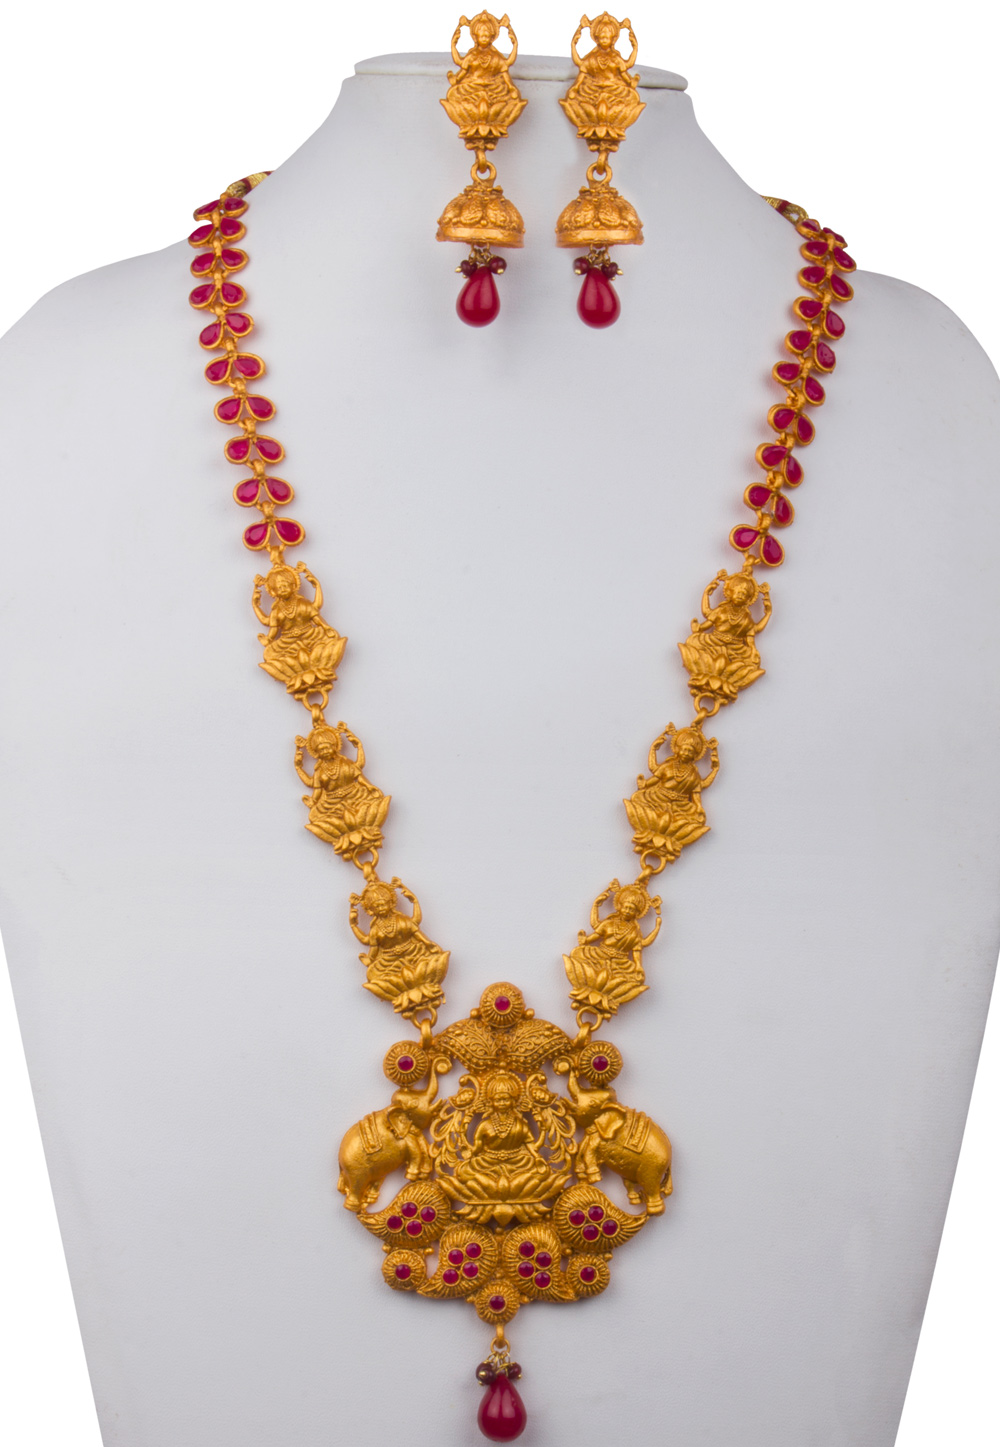 Golden Alloy Kundan Necklace With Earrings 156261